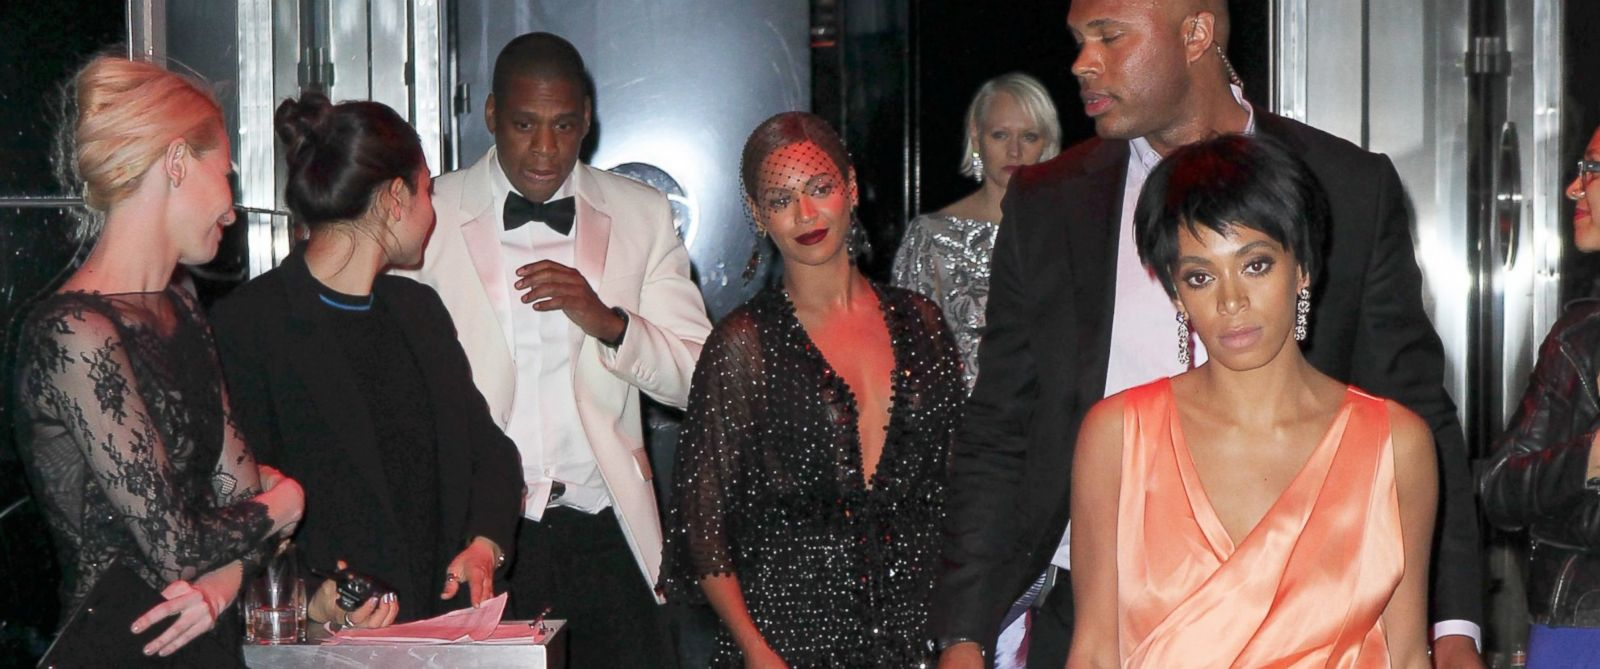 PHOTO: Jay Z, Beyonce and Solange leaving the Costume Institute Gala, at The Metropolitan Museum of Art in NYC, May 5, 2014.